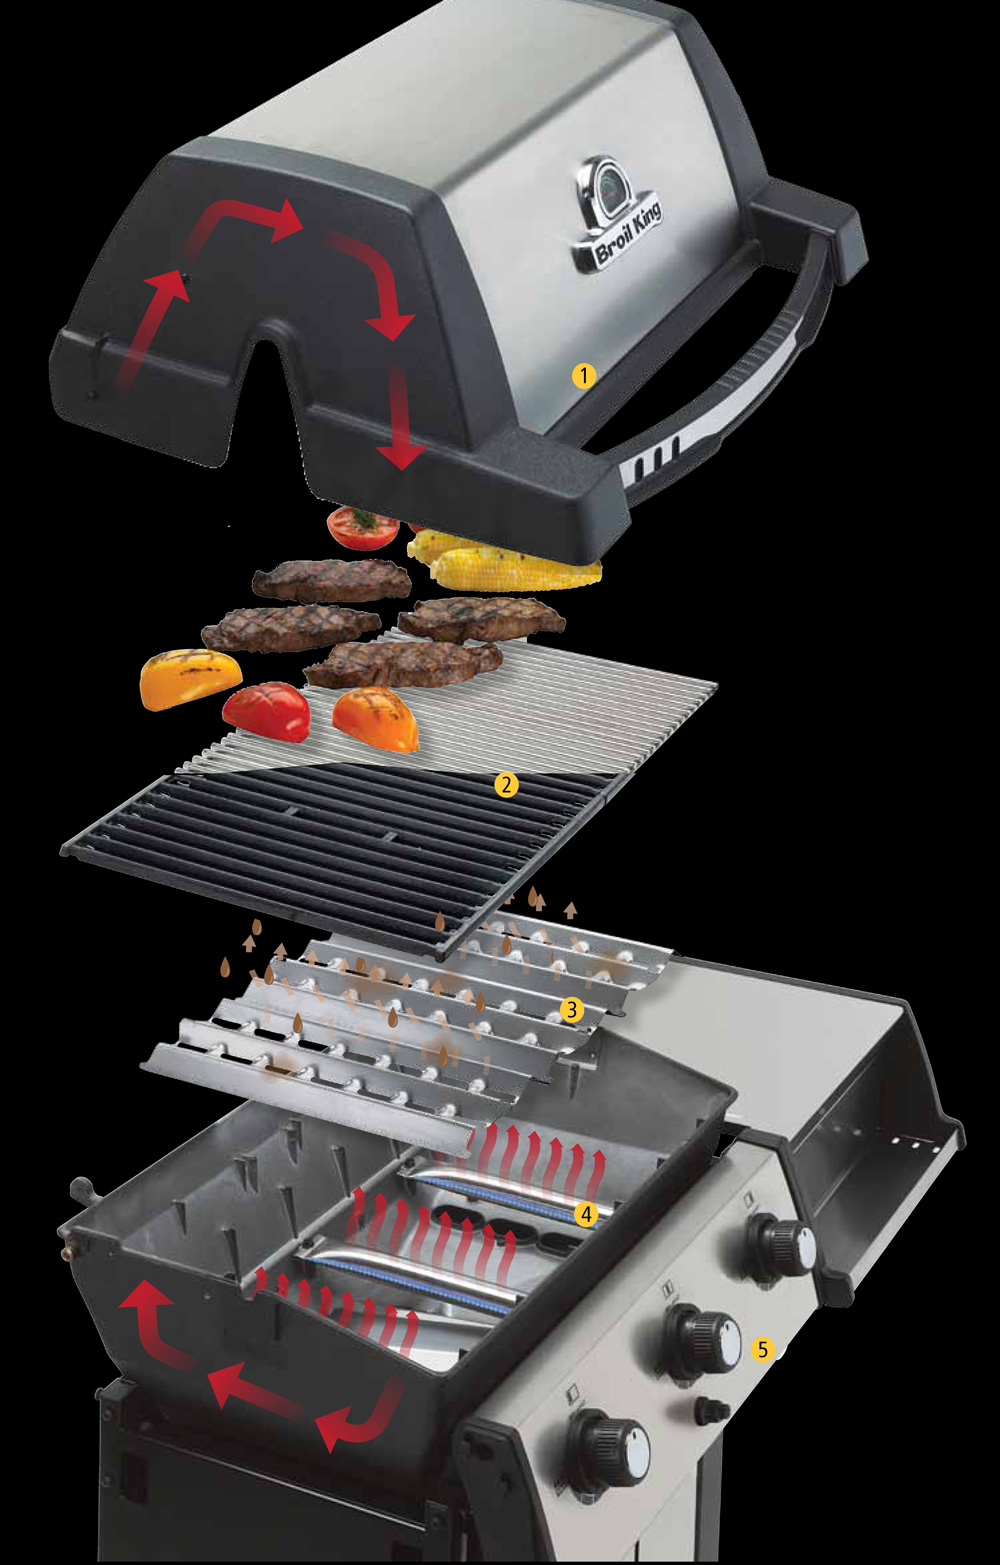 Das Broil King Gasgrill System